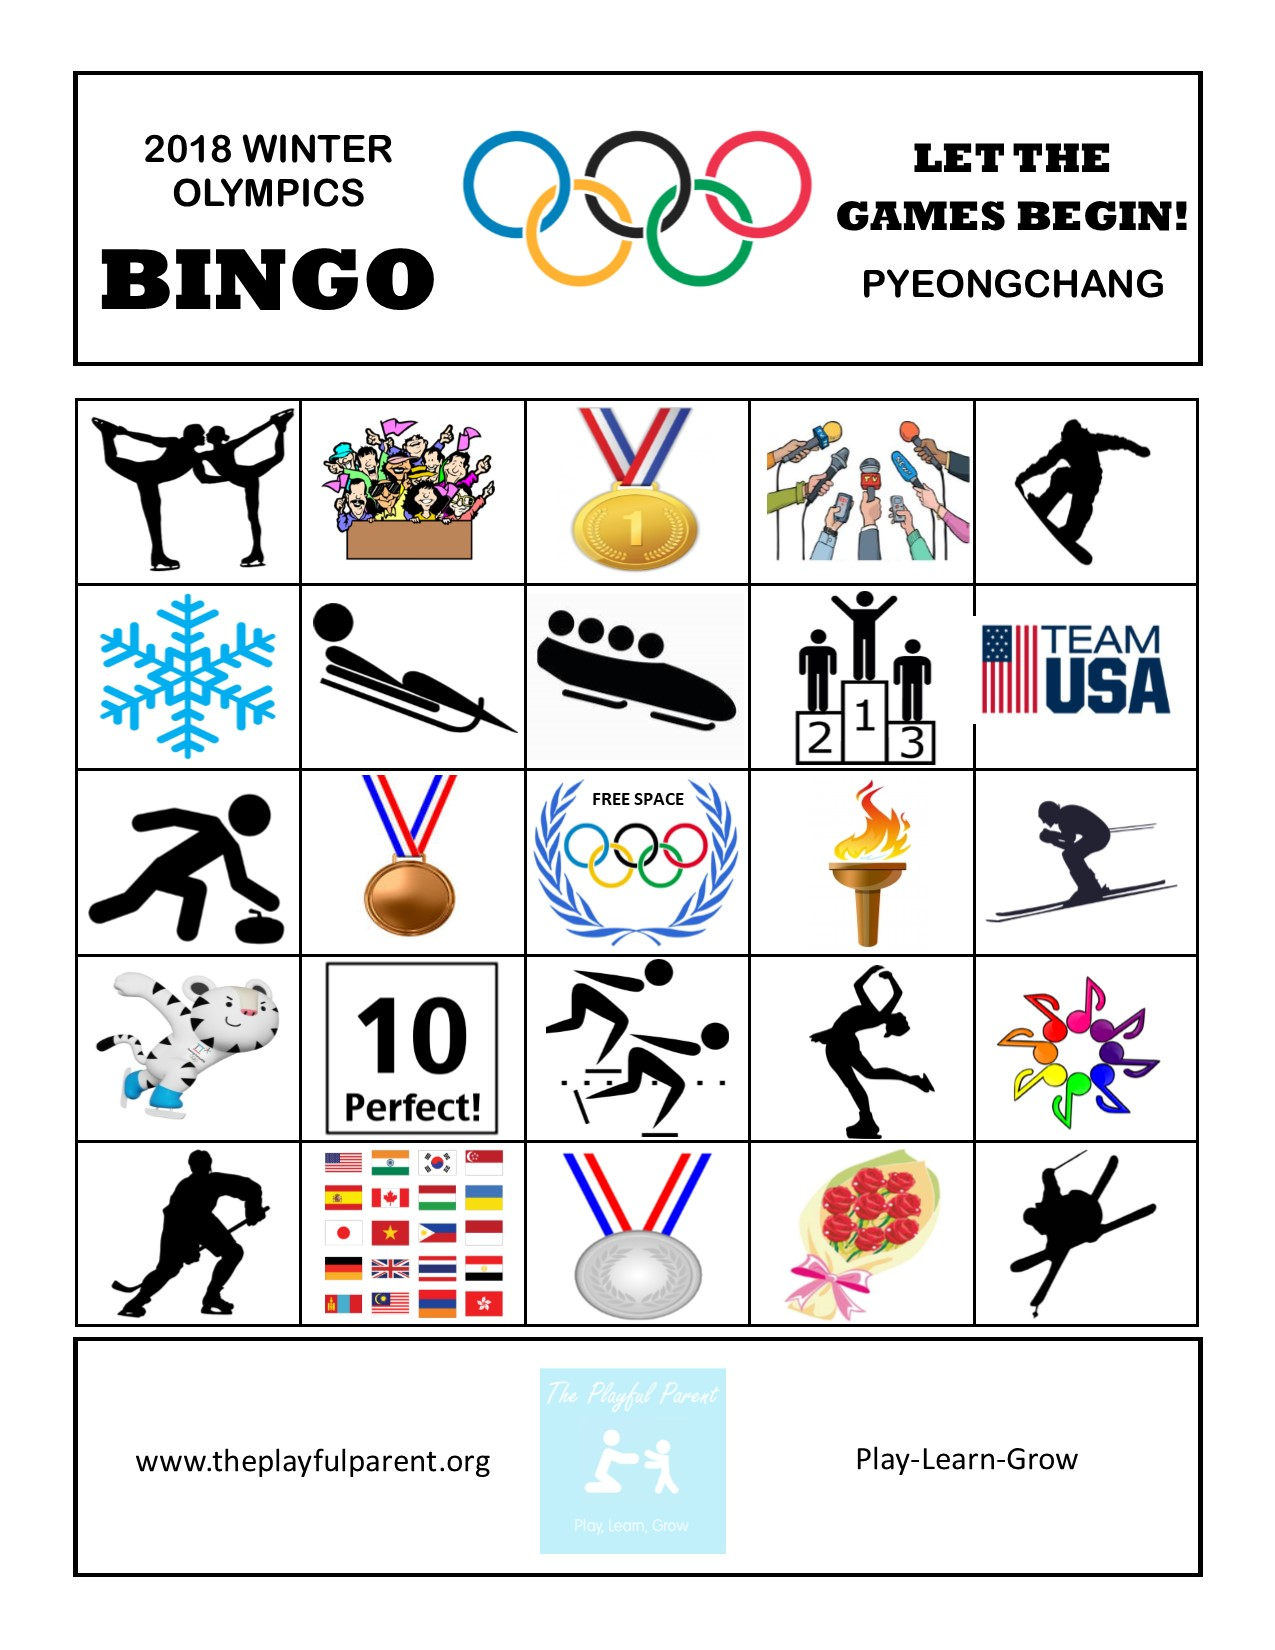 image regarding Winter Bingo Cards Free Printable named No cost PRINTABLE Winter season OLYMPIC BINGO